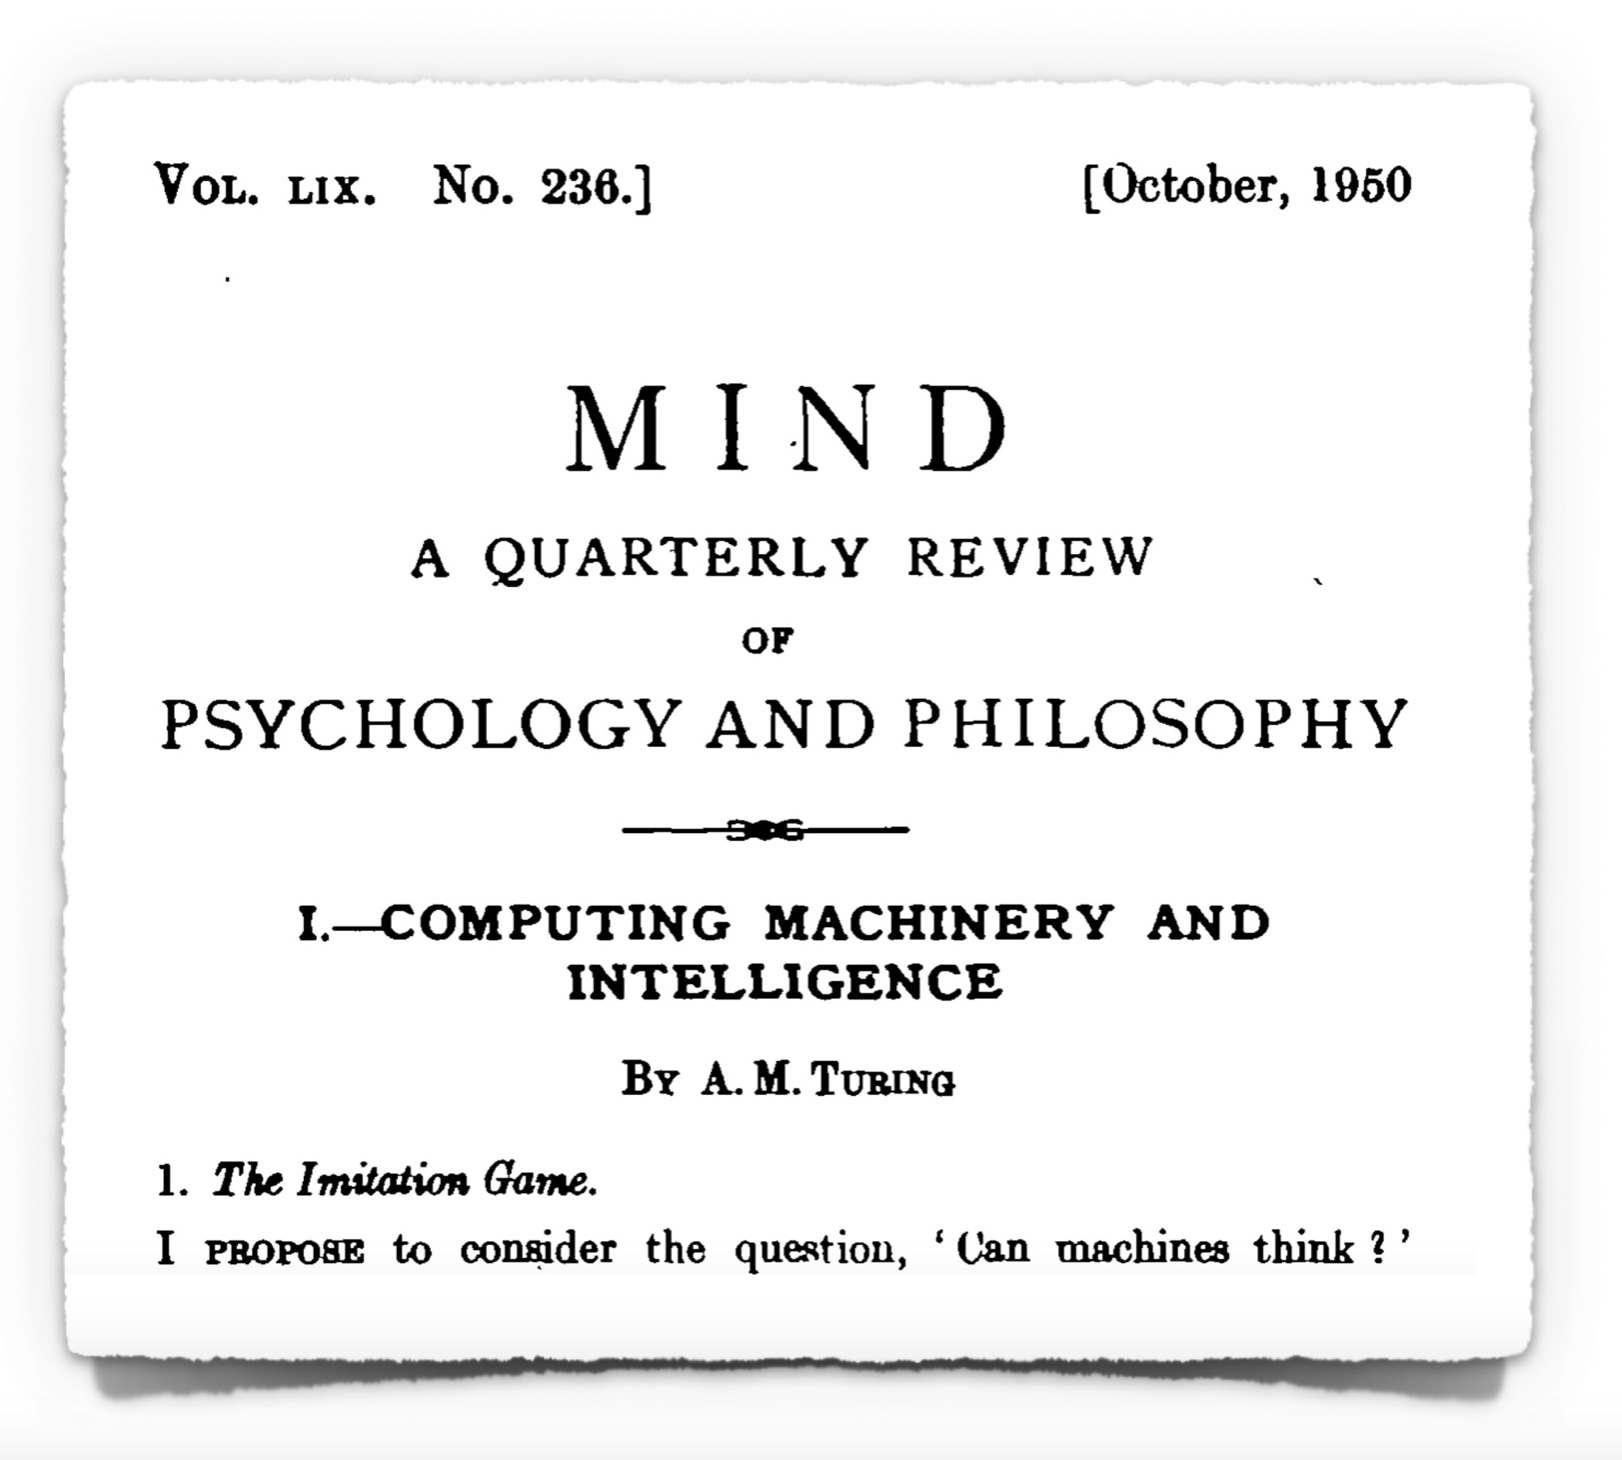 turing 1948 essay intelligent machinery Genetic programming: turing's third way to  in his 1948 essay intelligent machines [9],  implement turing's third way to achieve machine intelligence.